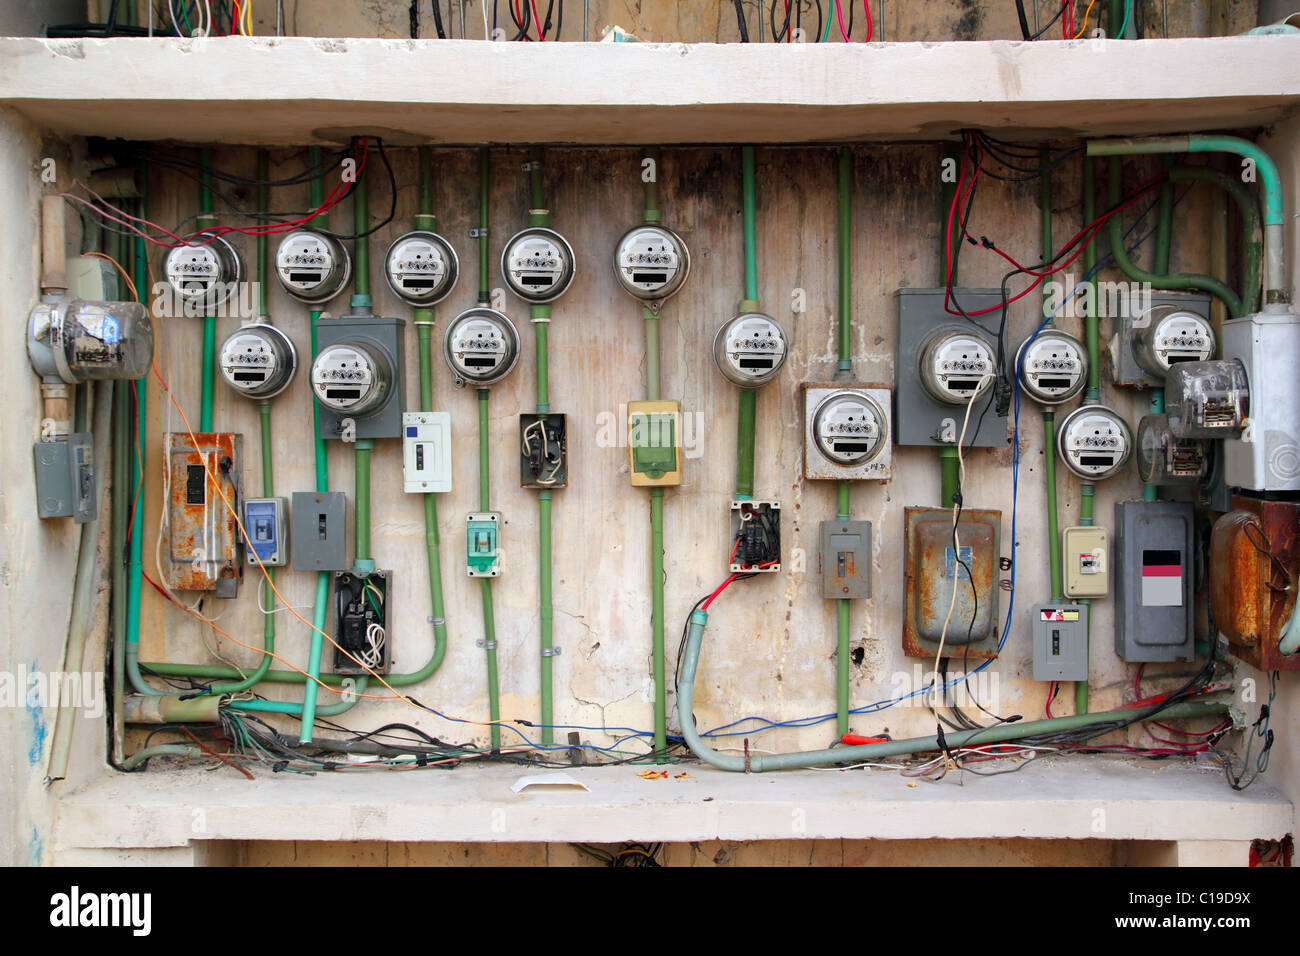 hight resolution of dangerous electric meter messy faulty electrical wiring installation